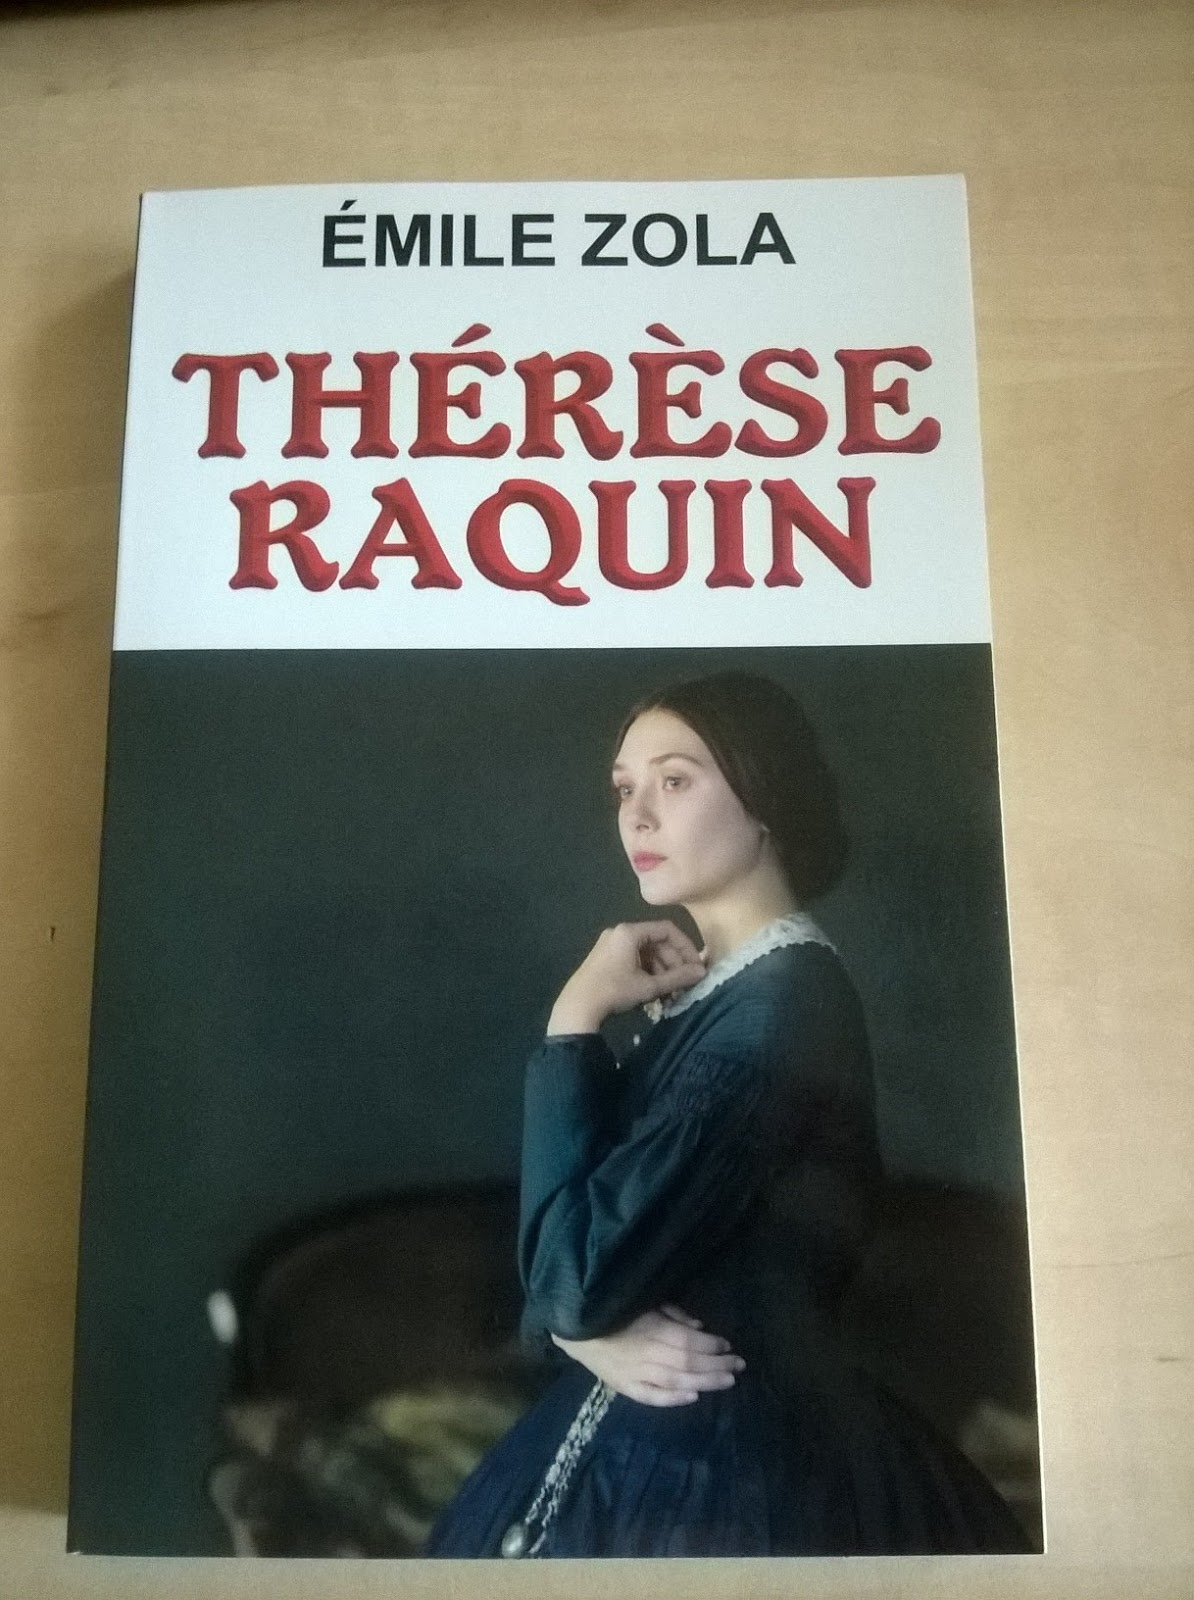 theresa raquin Therese raquin emile zola chapter 16 i 15 months later a zola continues to describe the feelings of laurent and thérèse in physiological terms 1 peaceful feeling of a crisis having passed 2 murder has satisfied their appetite for sex -- at least for the time being (80/119) 3 they are both happy b thérèse is happy no longer to.